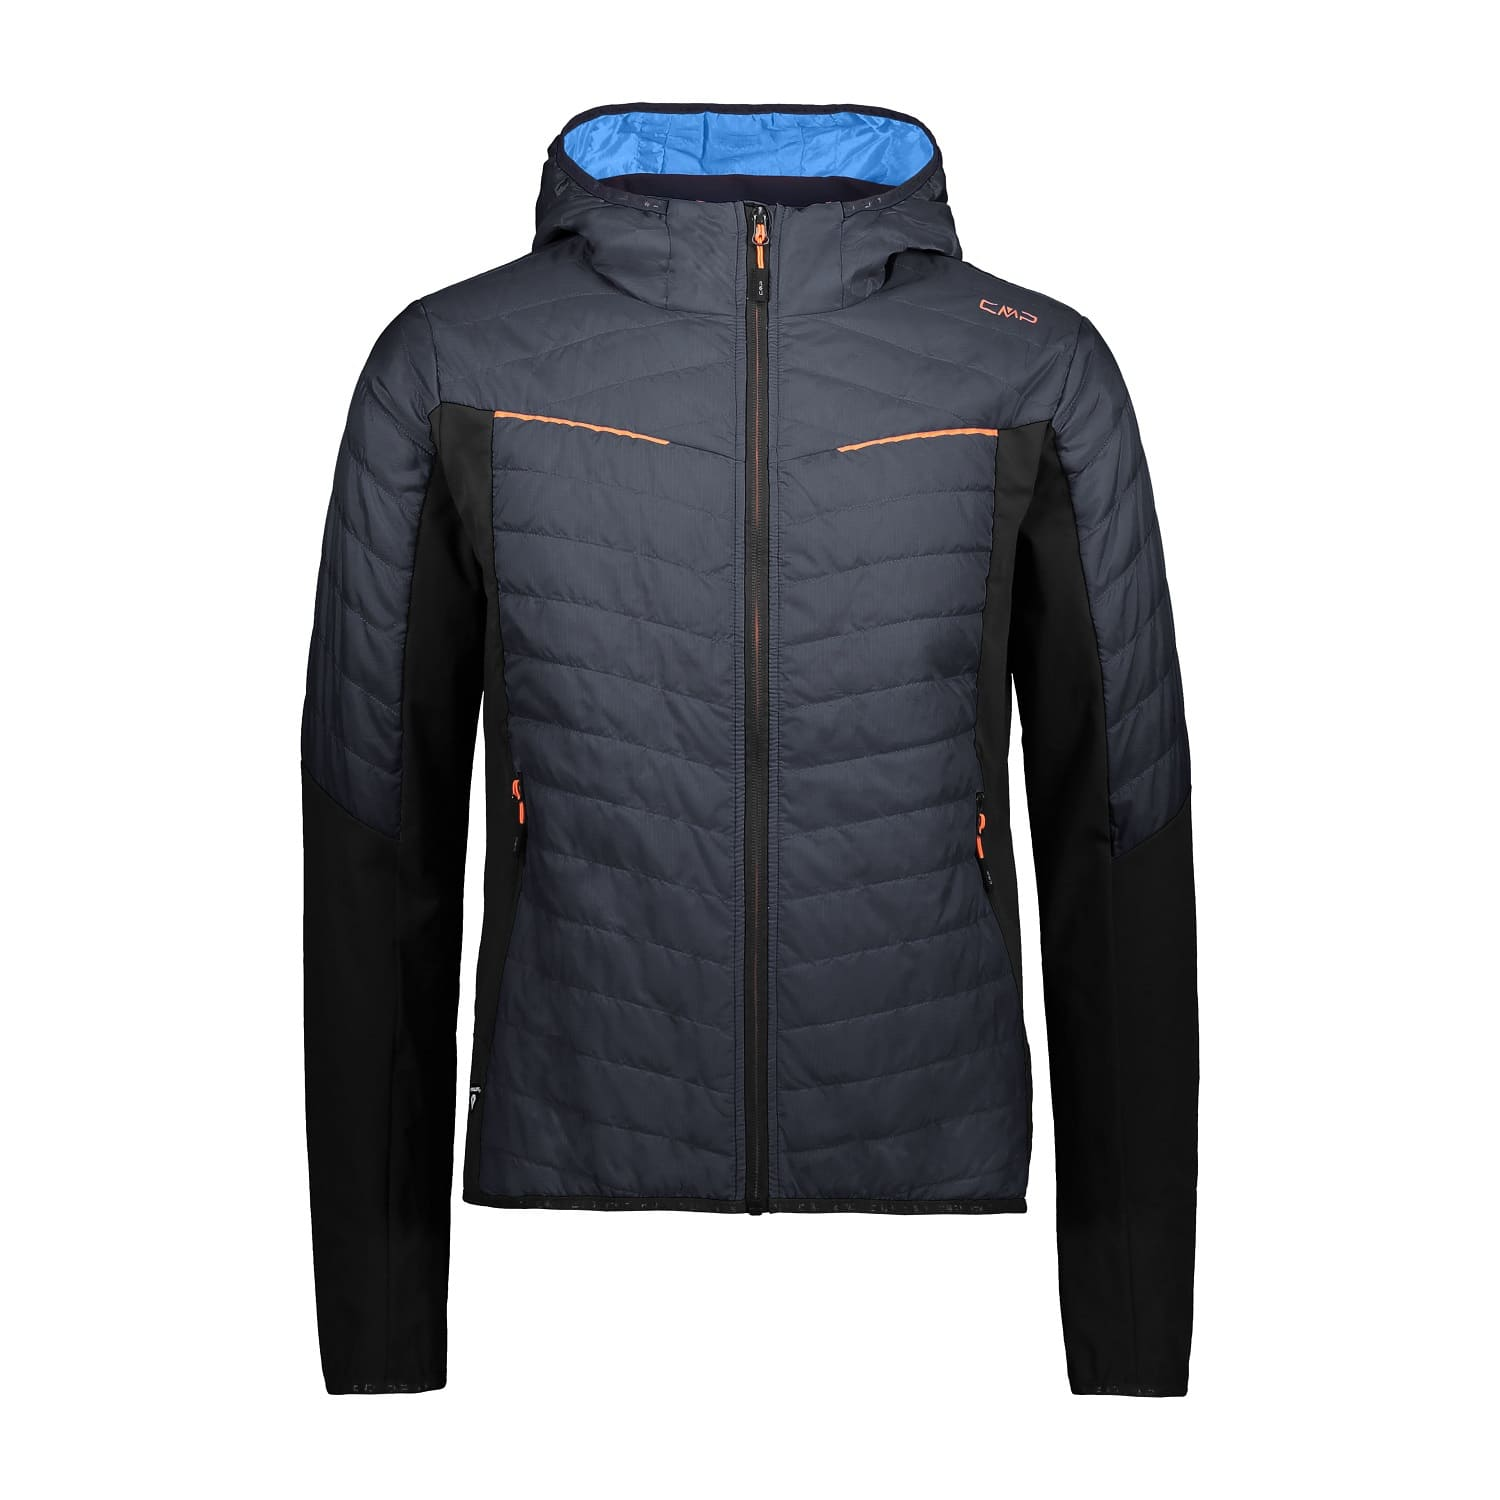 CMP MAN FIX HOOD HYBRID JACKET ANTRACITE - 50